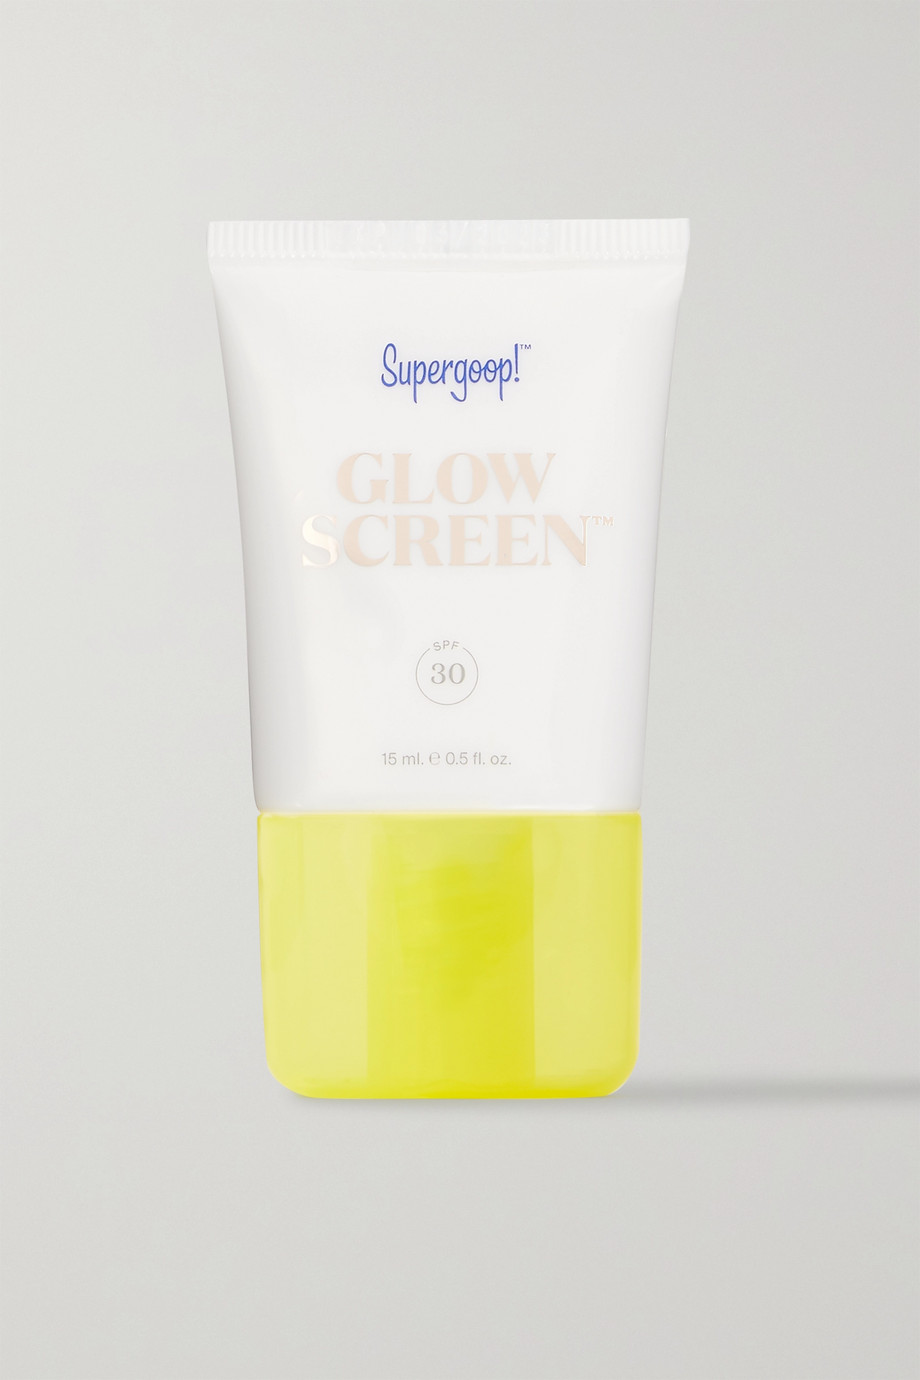 Supergoop! Glowscreen SPF 30, 15 ml